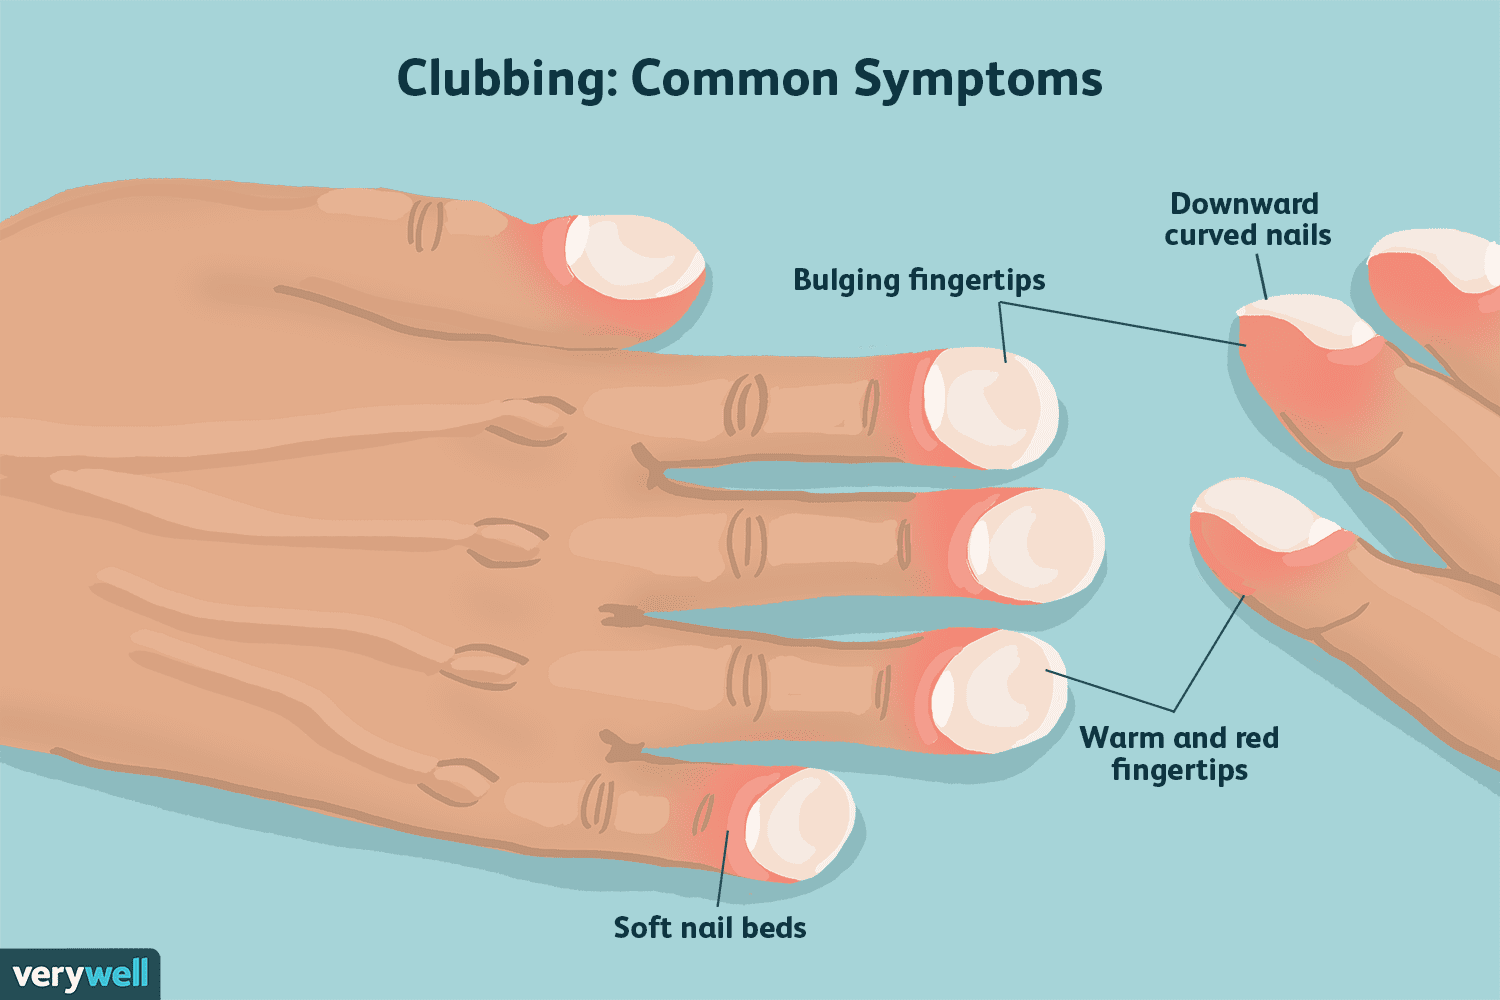 Clubbed finger symptoms related to pulmonary fibrosis